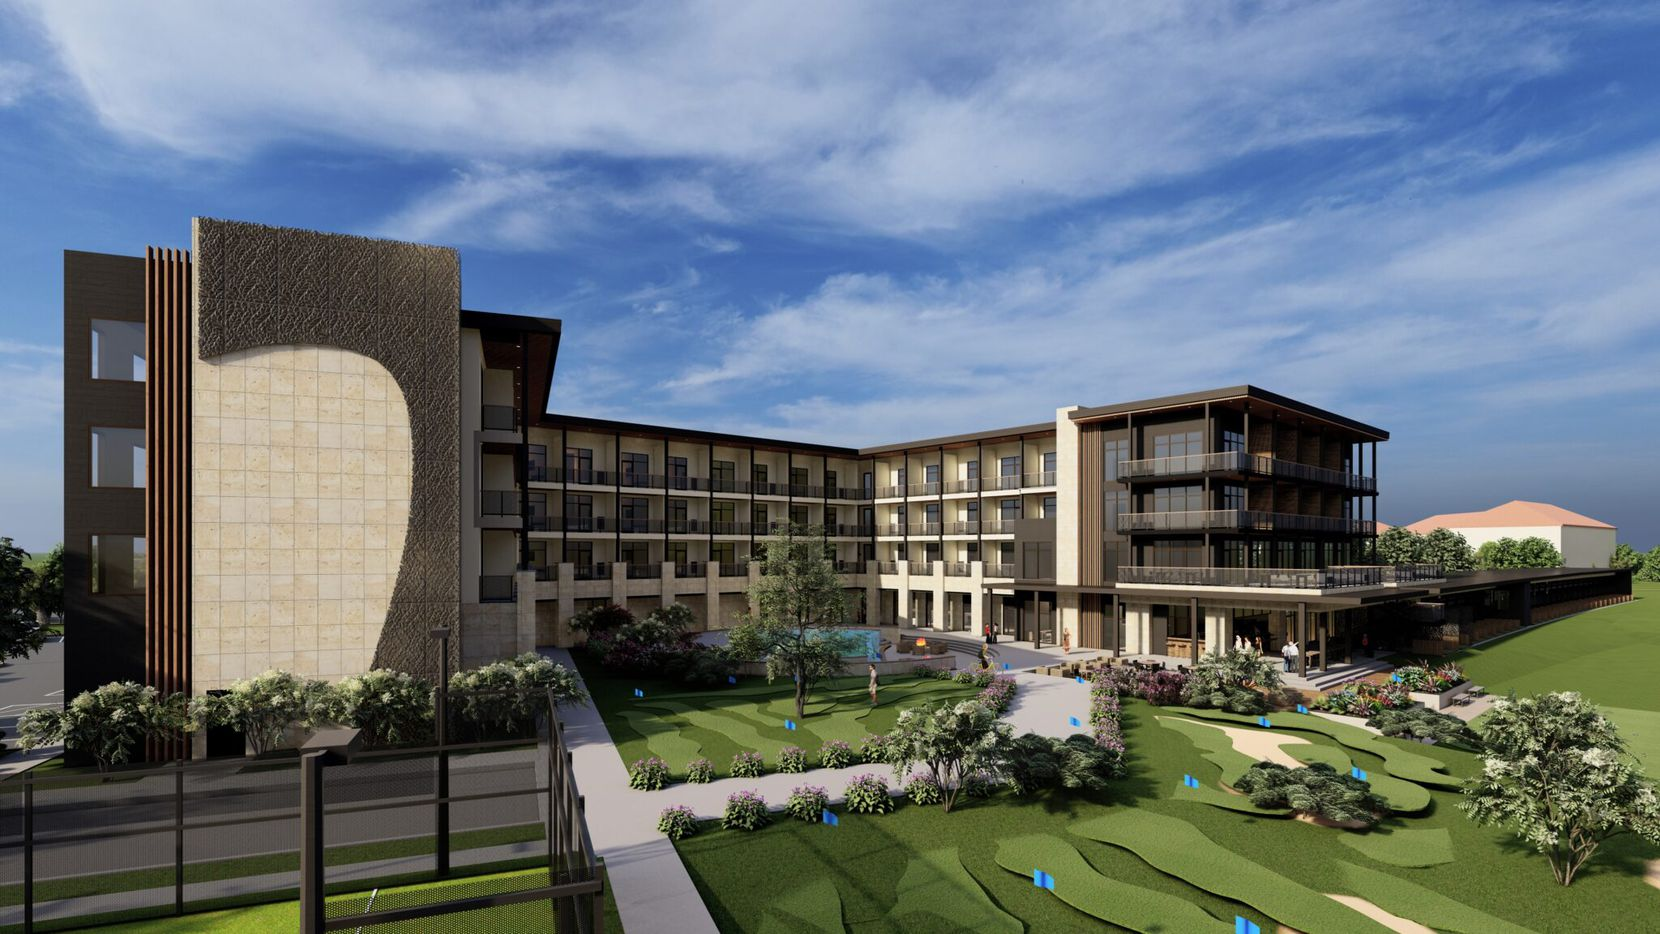 The RiverPark Arlington will have 87 rooms.